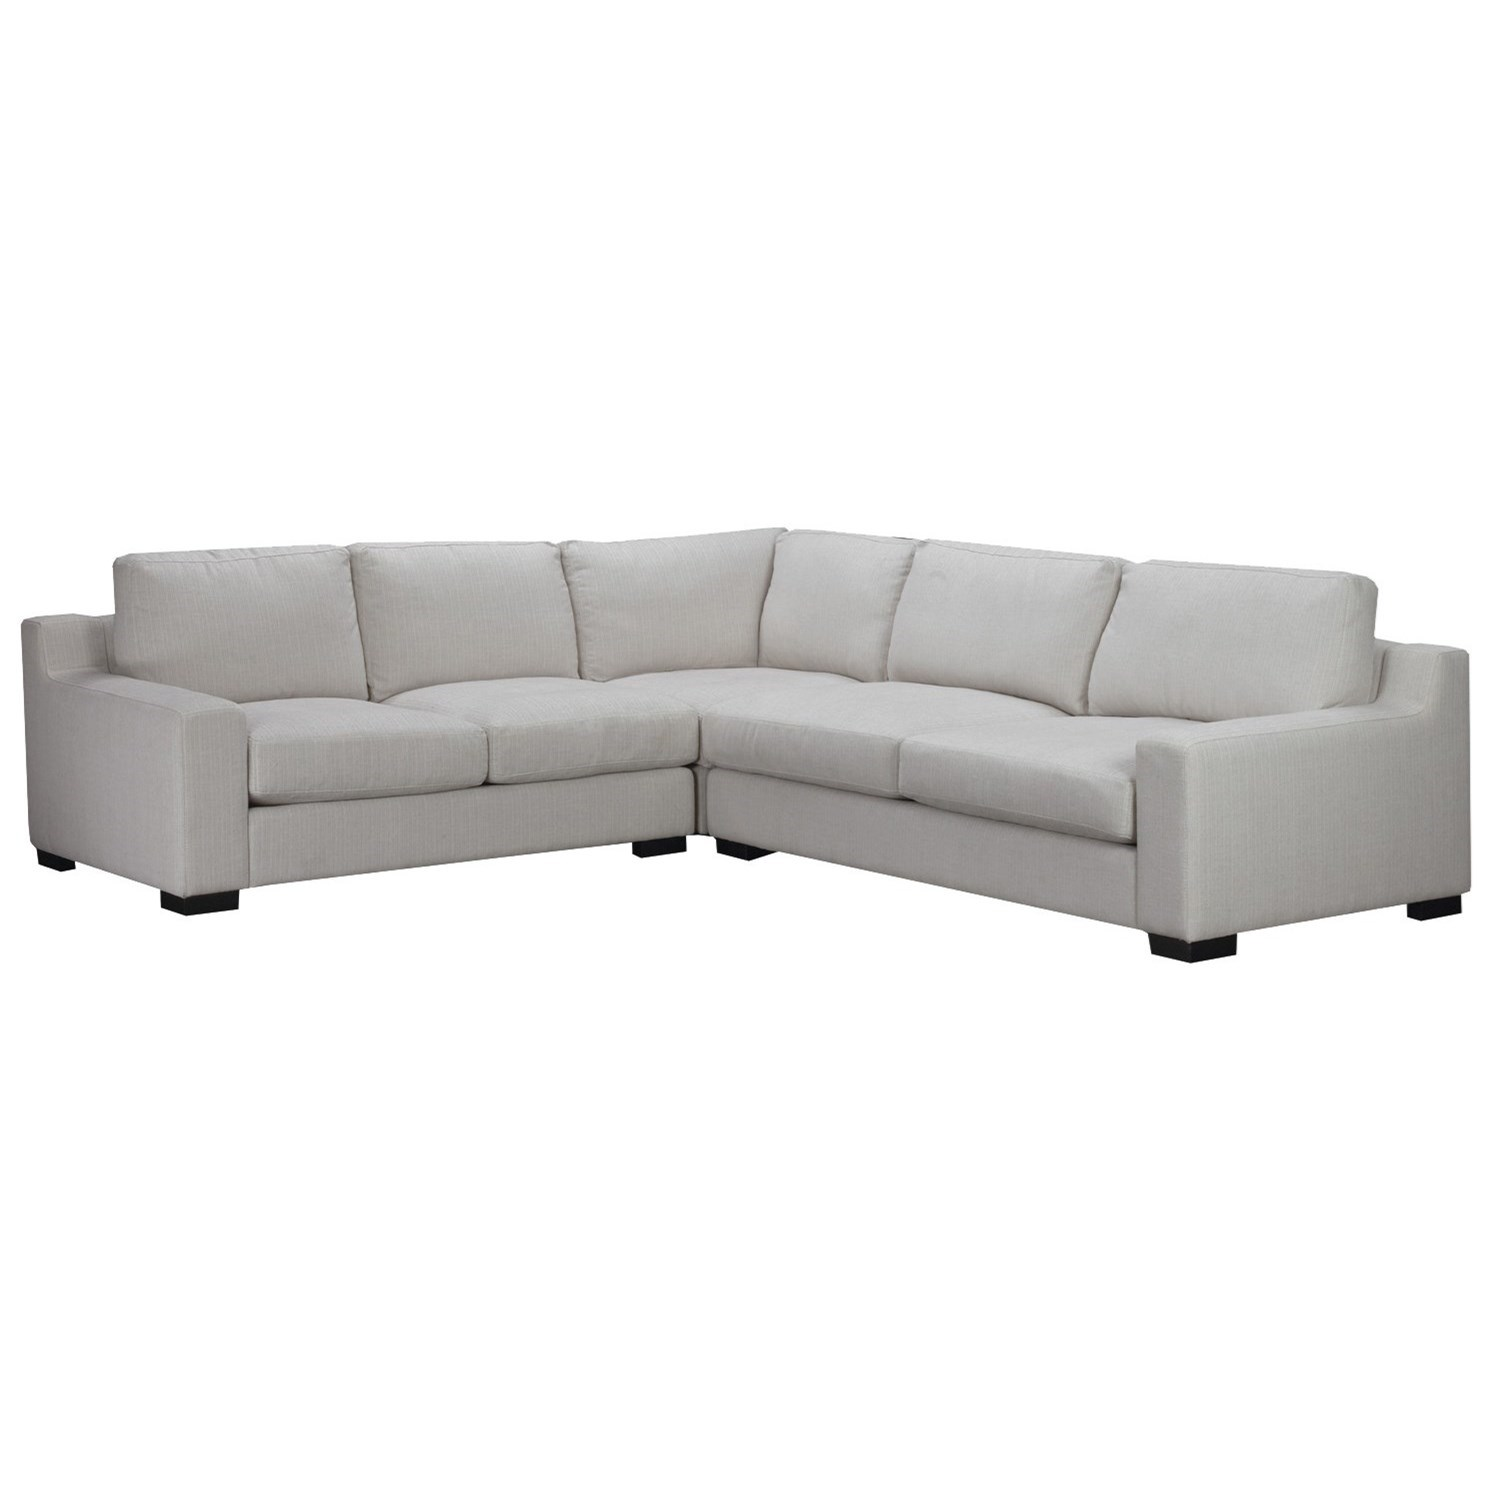 Athena 3 Piece Sectional by Brentwood Classics at Stoney Creek Furniture